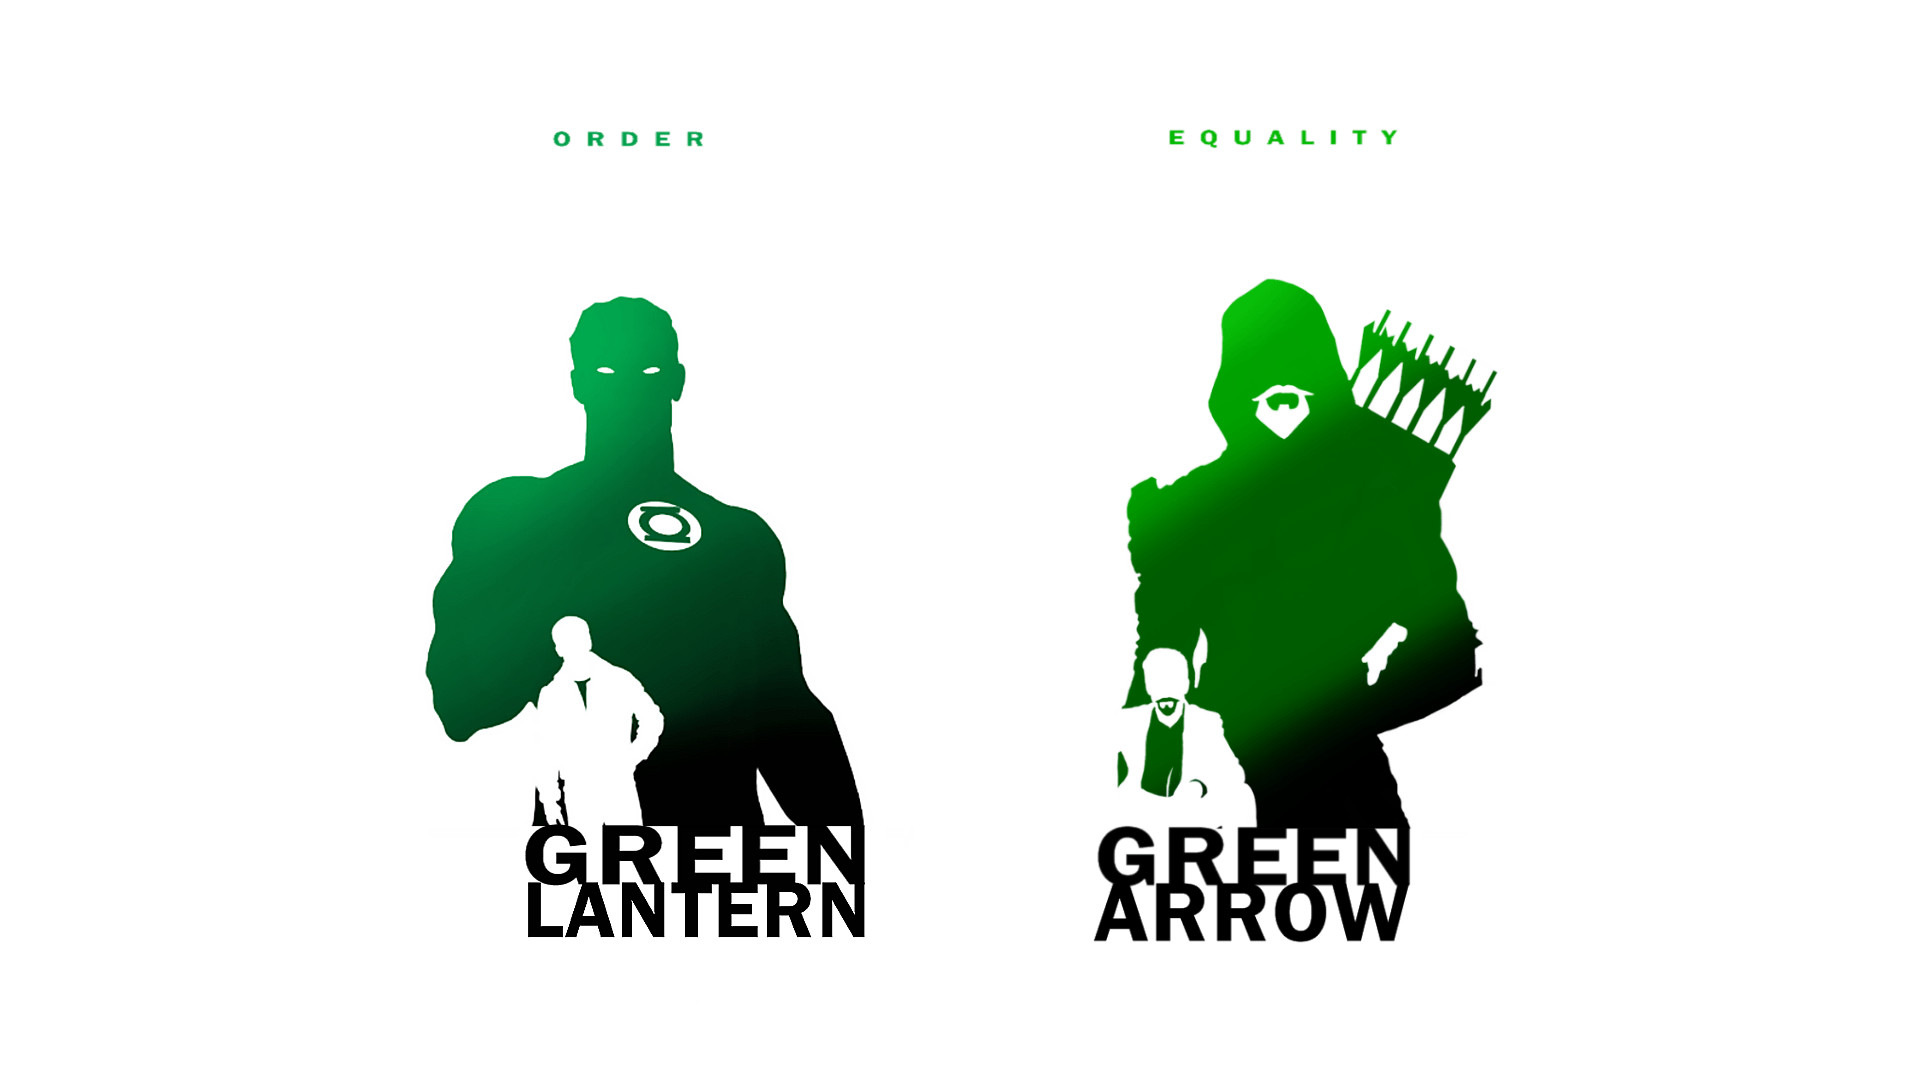 1920x1080 Green Arrow quotes. iPhone Wallpapers 8 Superheroes Quotes, tap to .